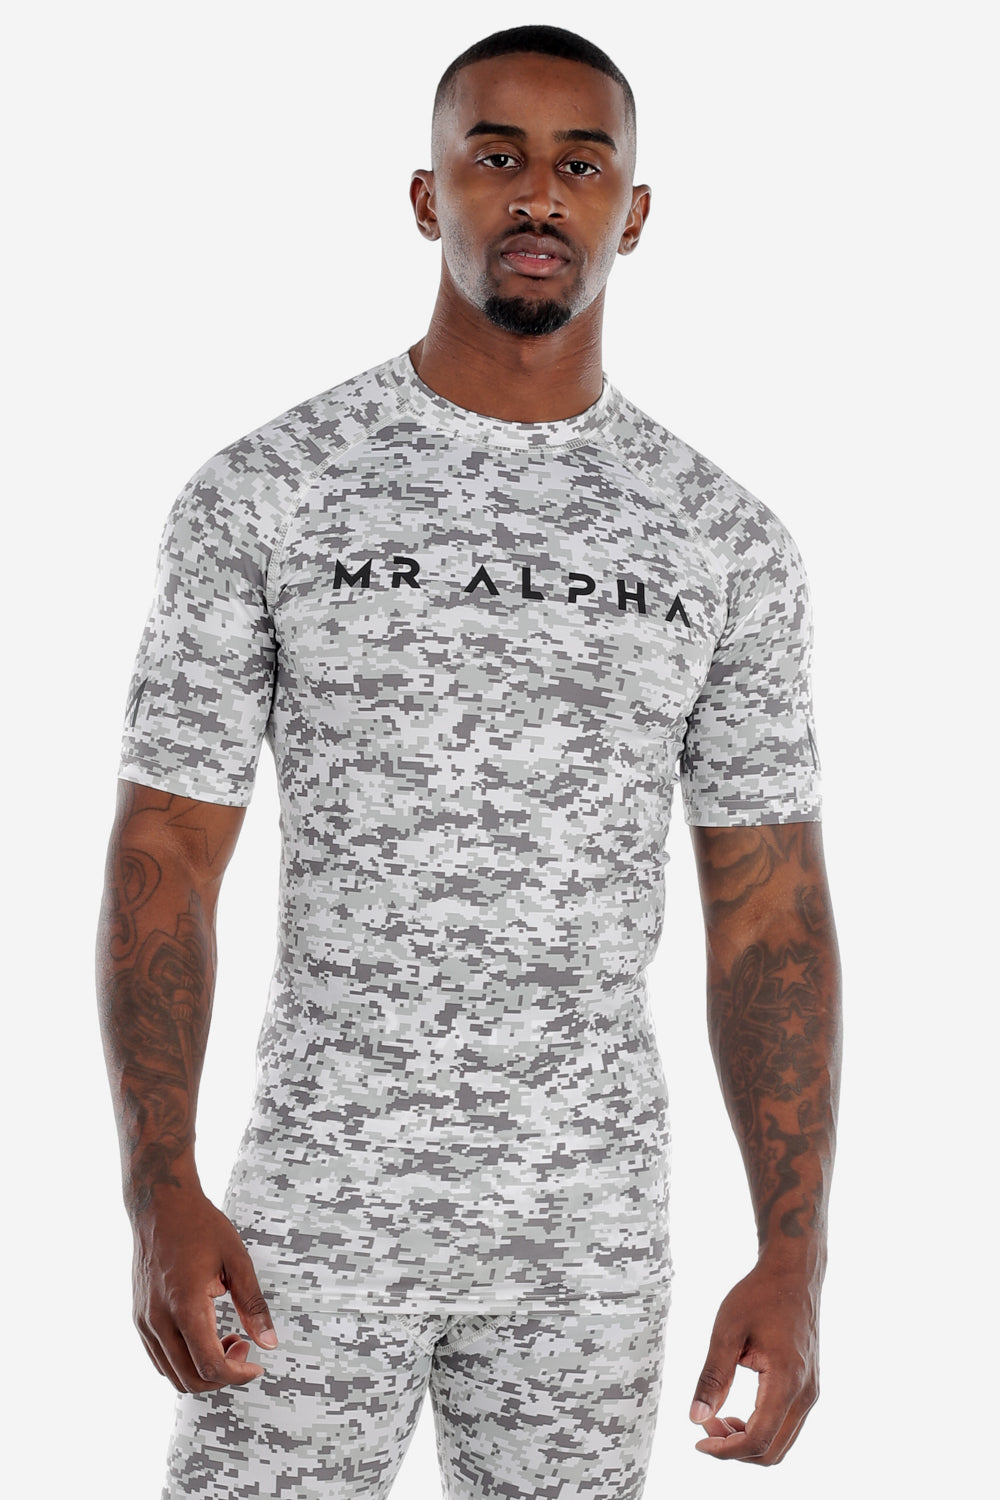 Grey Camo Short Sleeve Compression Shirt